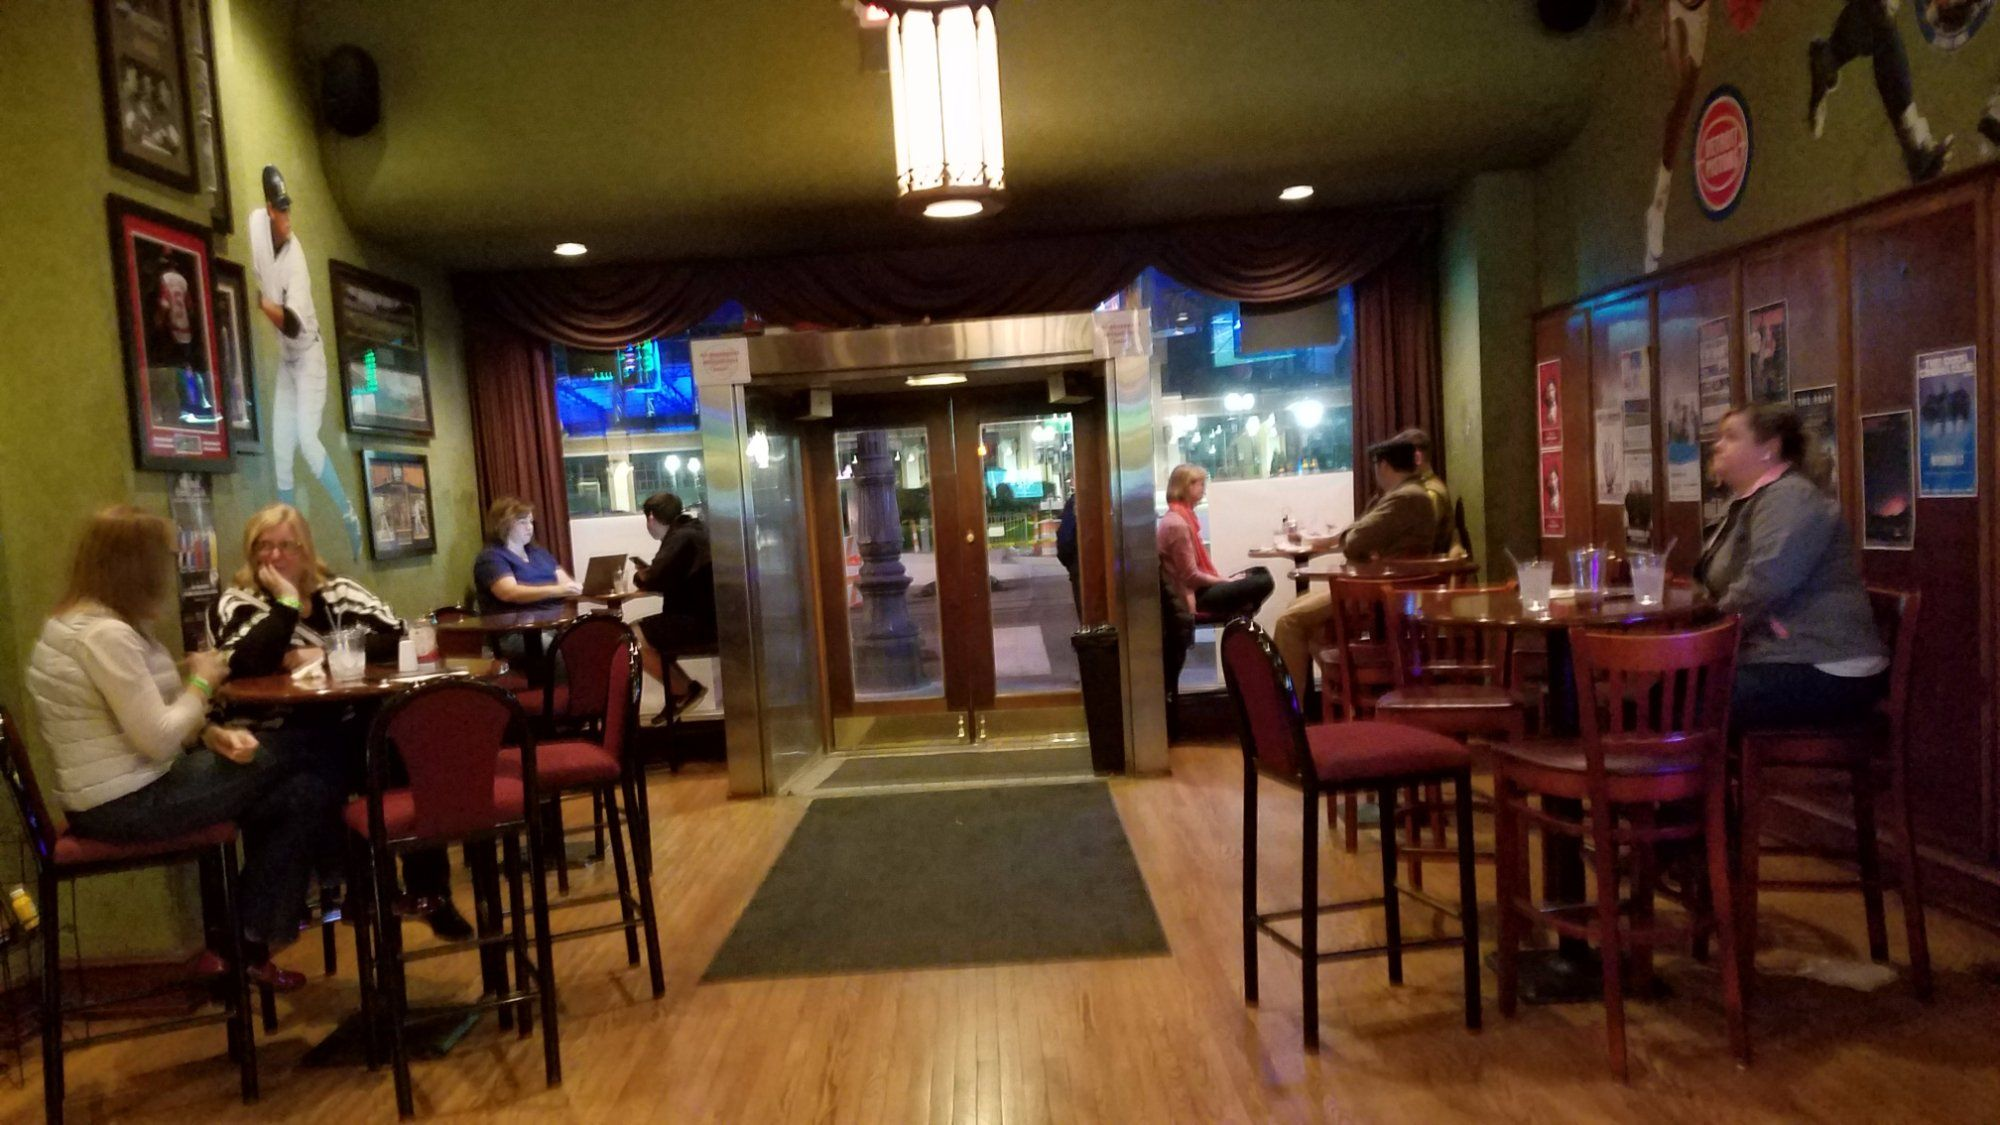 State Bar Grill Detroit Restaurant Reviews Phone Number